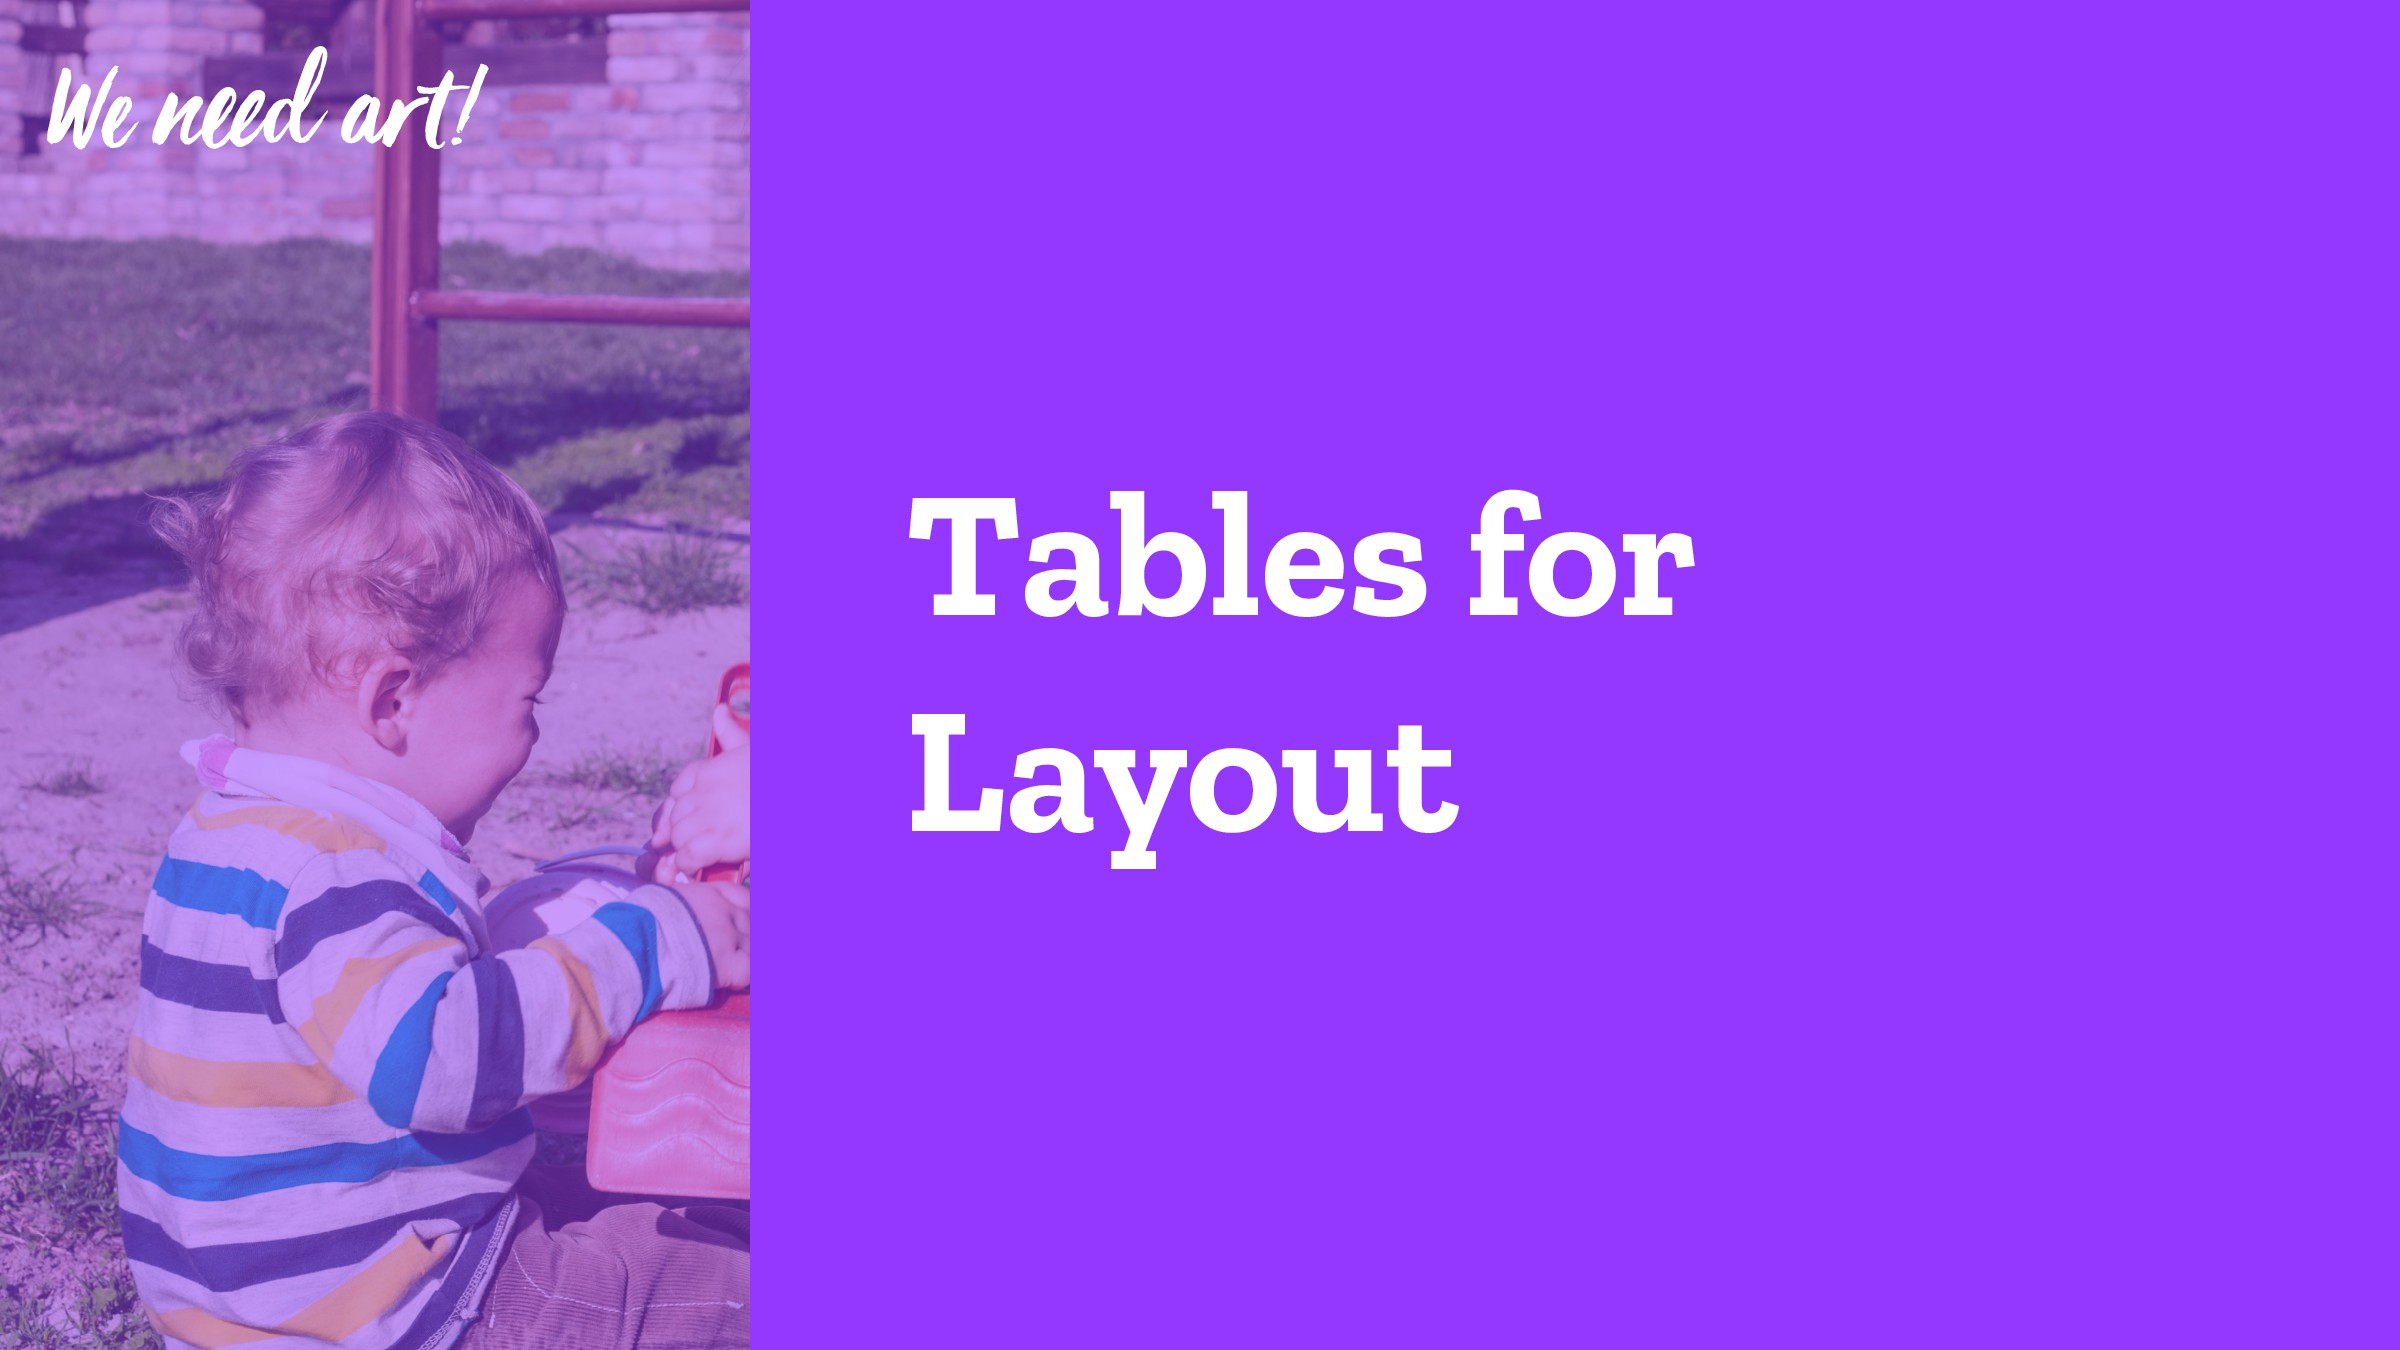 """Tables for Layout We n""""d a#!"""